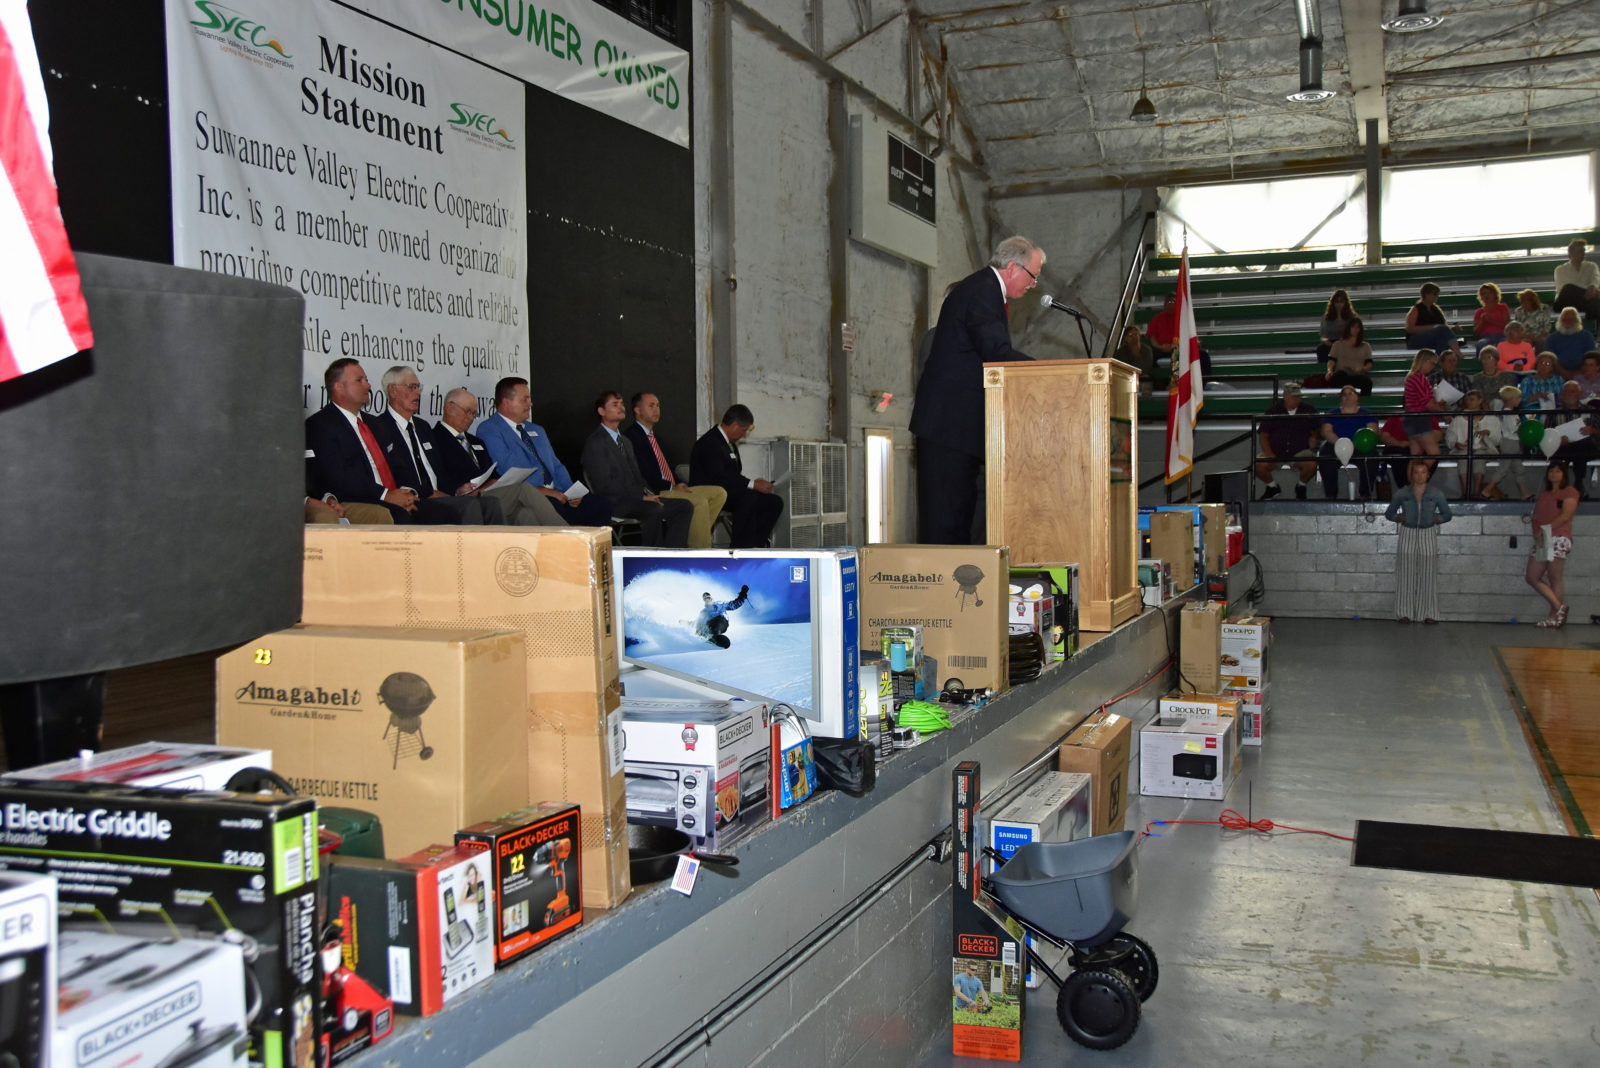 A man speaking at podium with the board of directors sitting behind him. Various door prizes, including a TV and a grill, are sitting on stage. A banner behind him contains the SVEC logo and reads: Mission Statement. Suwannee Valley Electric Cooperative, Inc. is a member owned organization providing competitive rates and reliable service while…